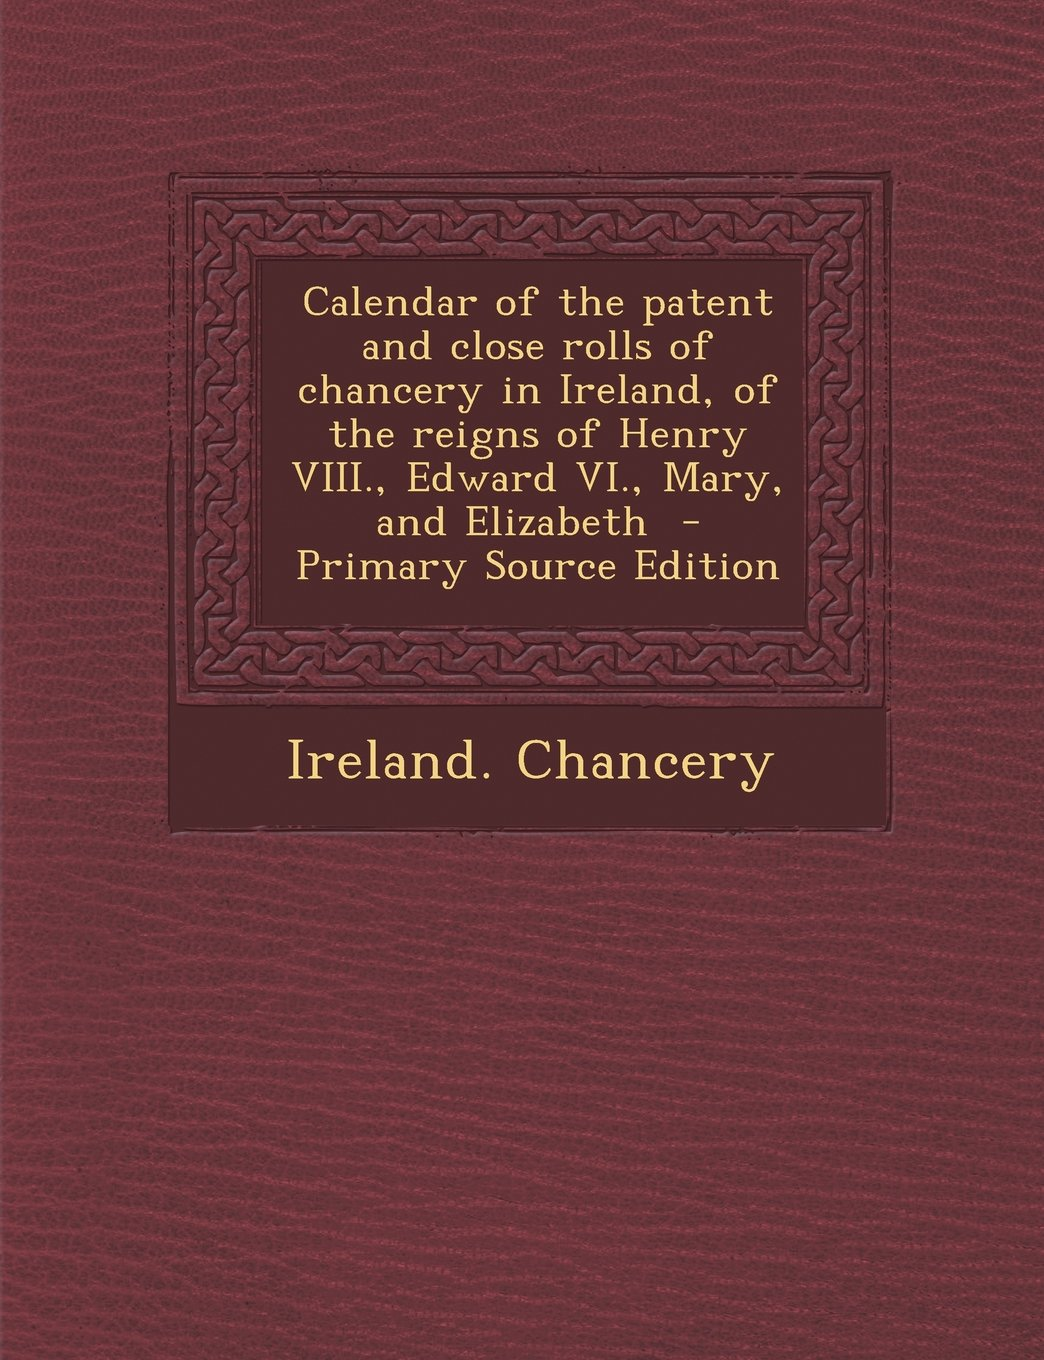 Calendar of the Patent and Close Rolls of Chancery in Ireland, of the Reigns of Henry VIII., Edward VI., Mary, and Elizabeth pdf